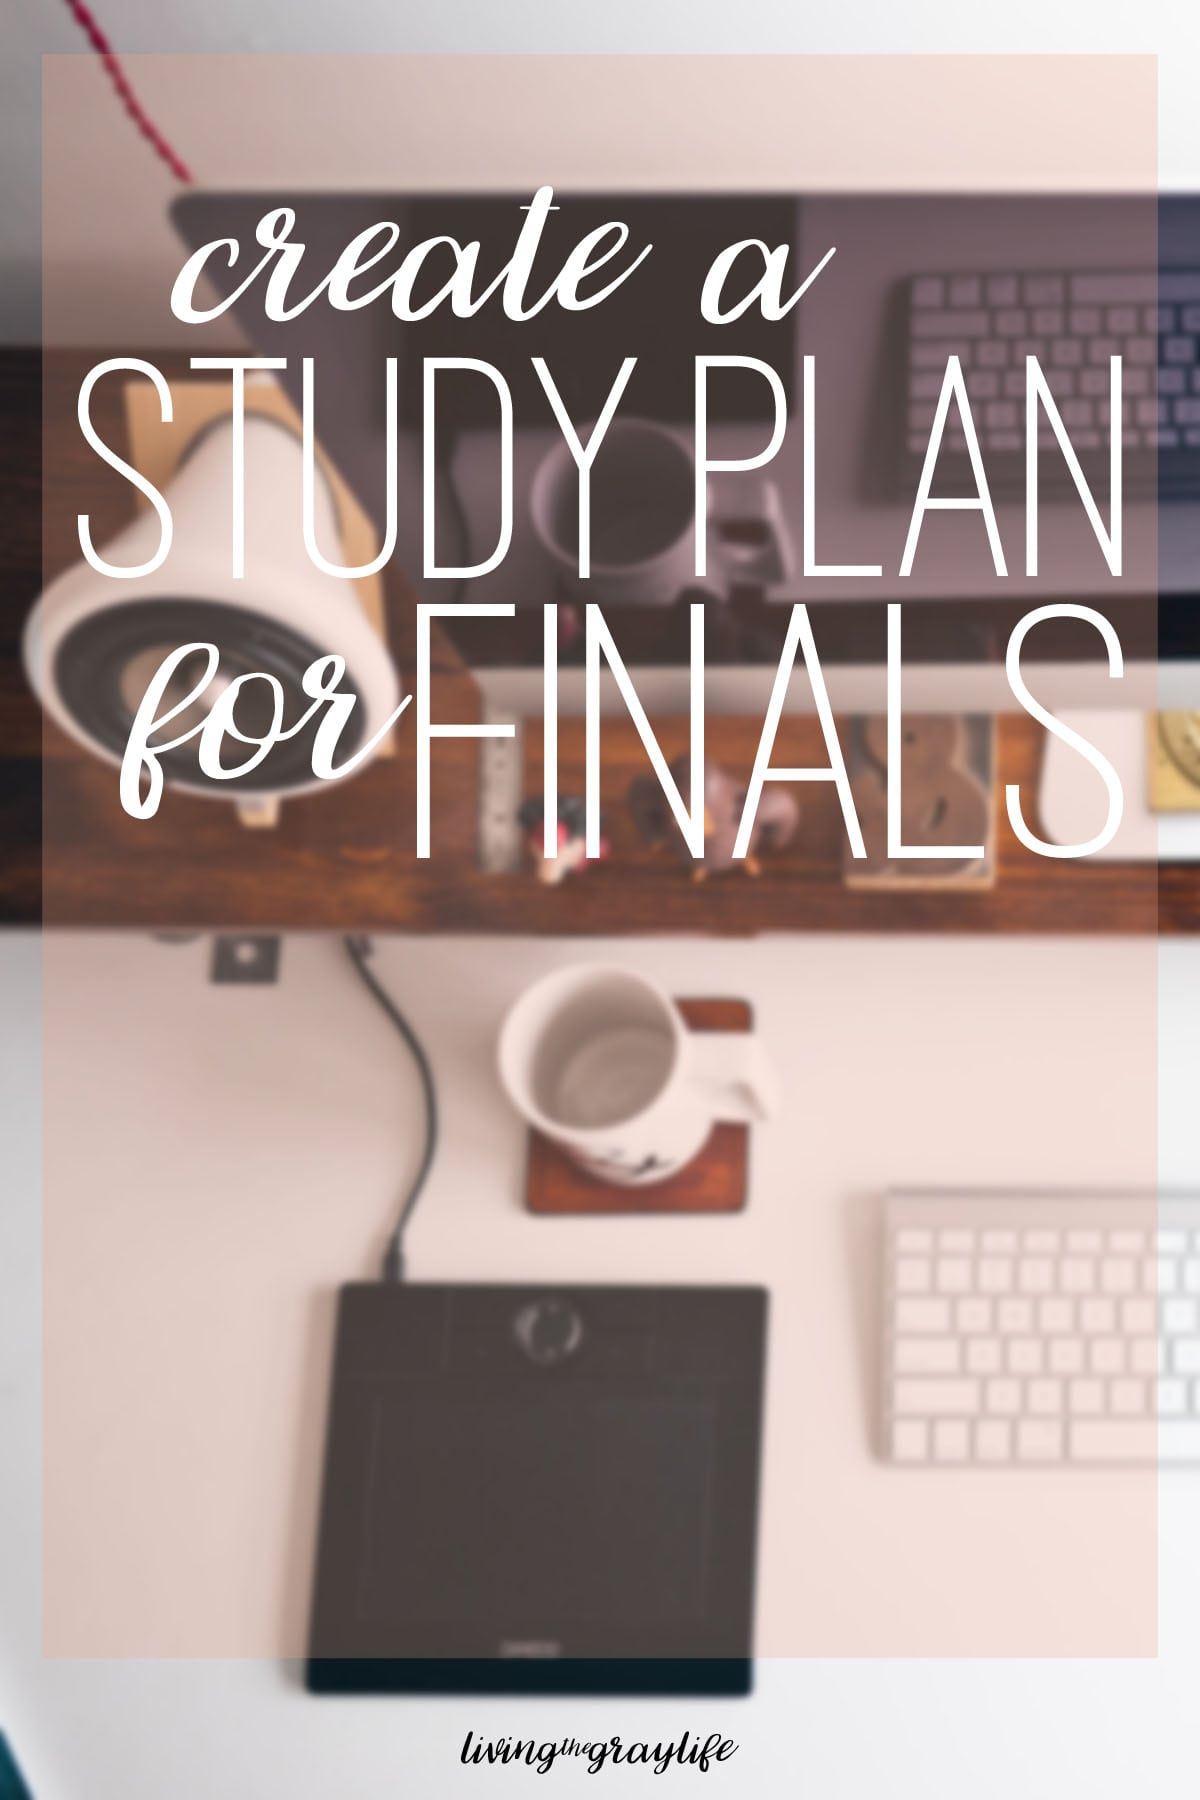 Don't fall behind this finals season! Create your very own finals study plan to make sure you get those A's and avoid all the unnecessary stress.